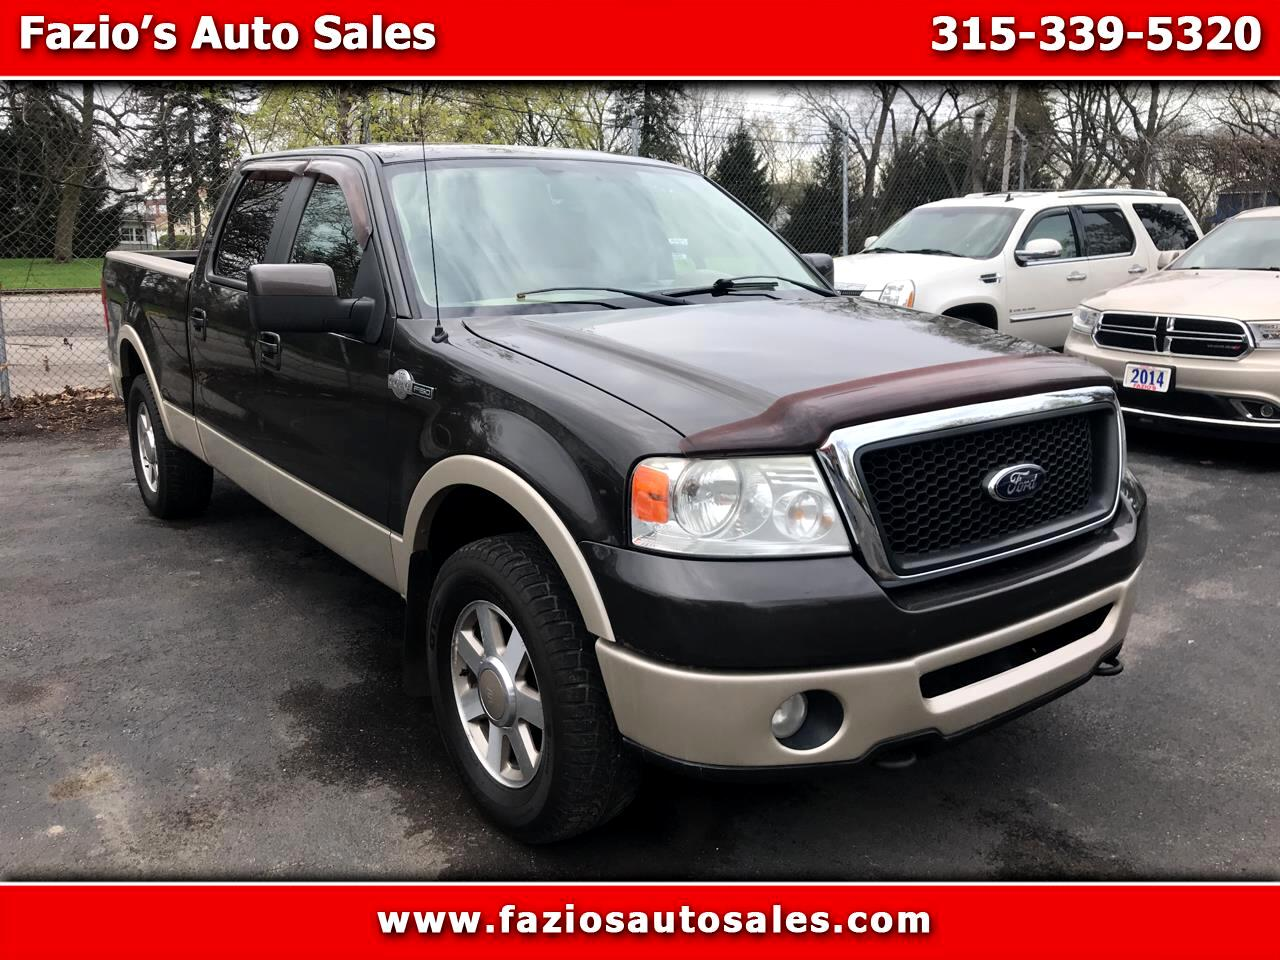 2007 Ford F-150 4WD SuperCrew 139